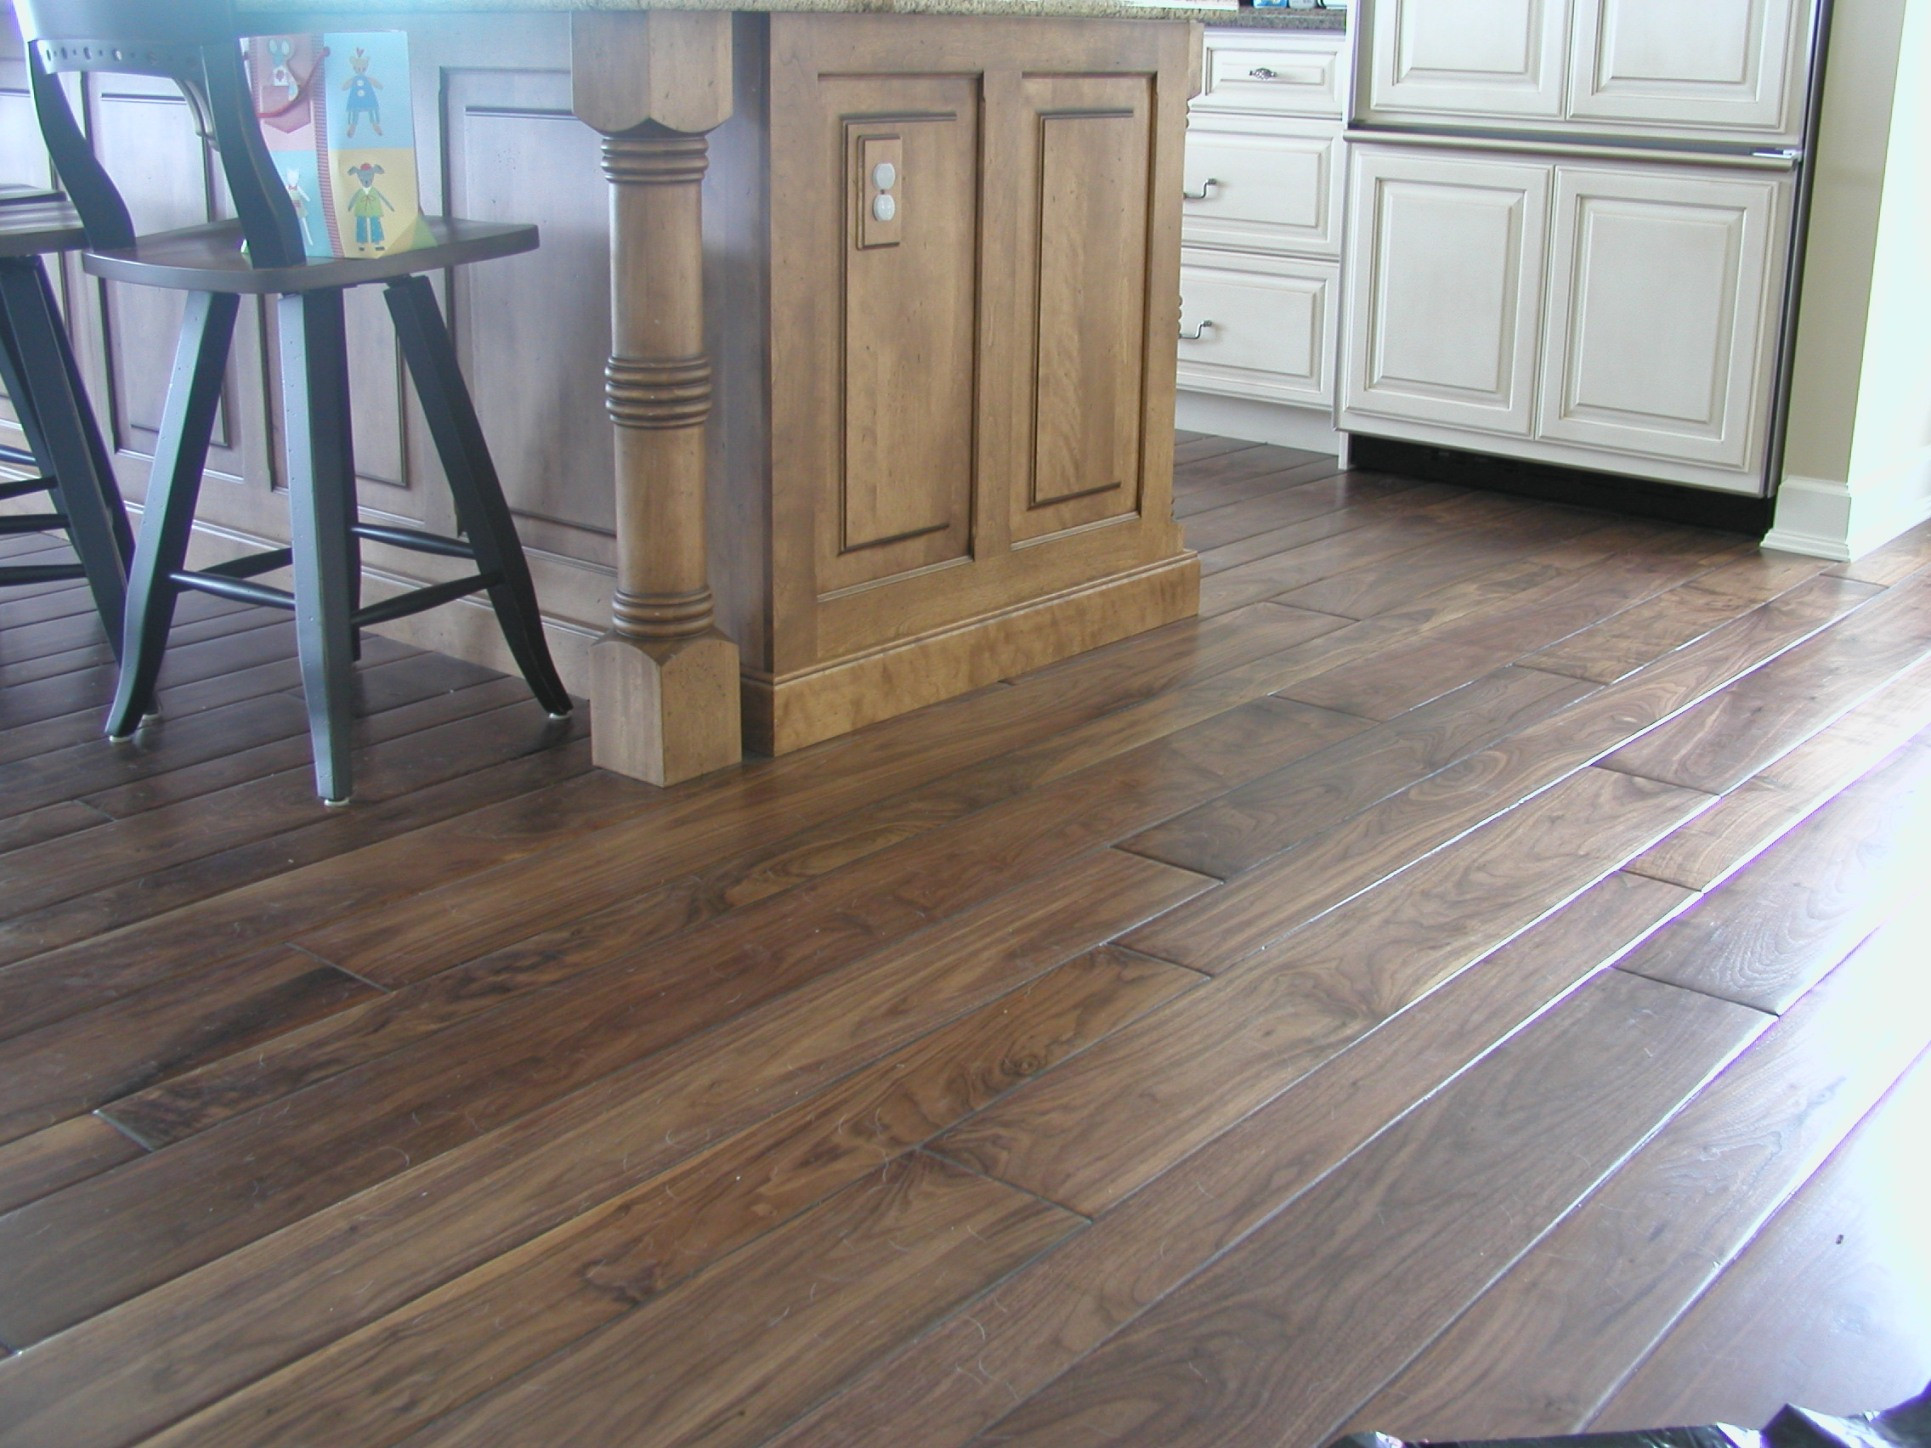 Mohawk White Oak Hardwood Flooring Of Millcreek Flooring Floor for Millcreek Flooring Christopherson Wood Floors Red Oak White Oak Walnut Install and